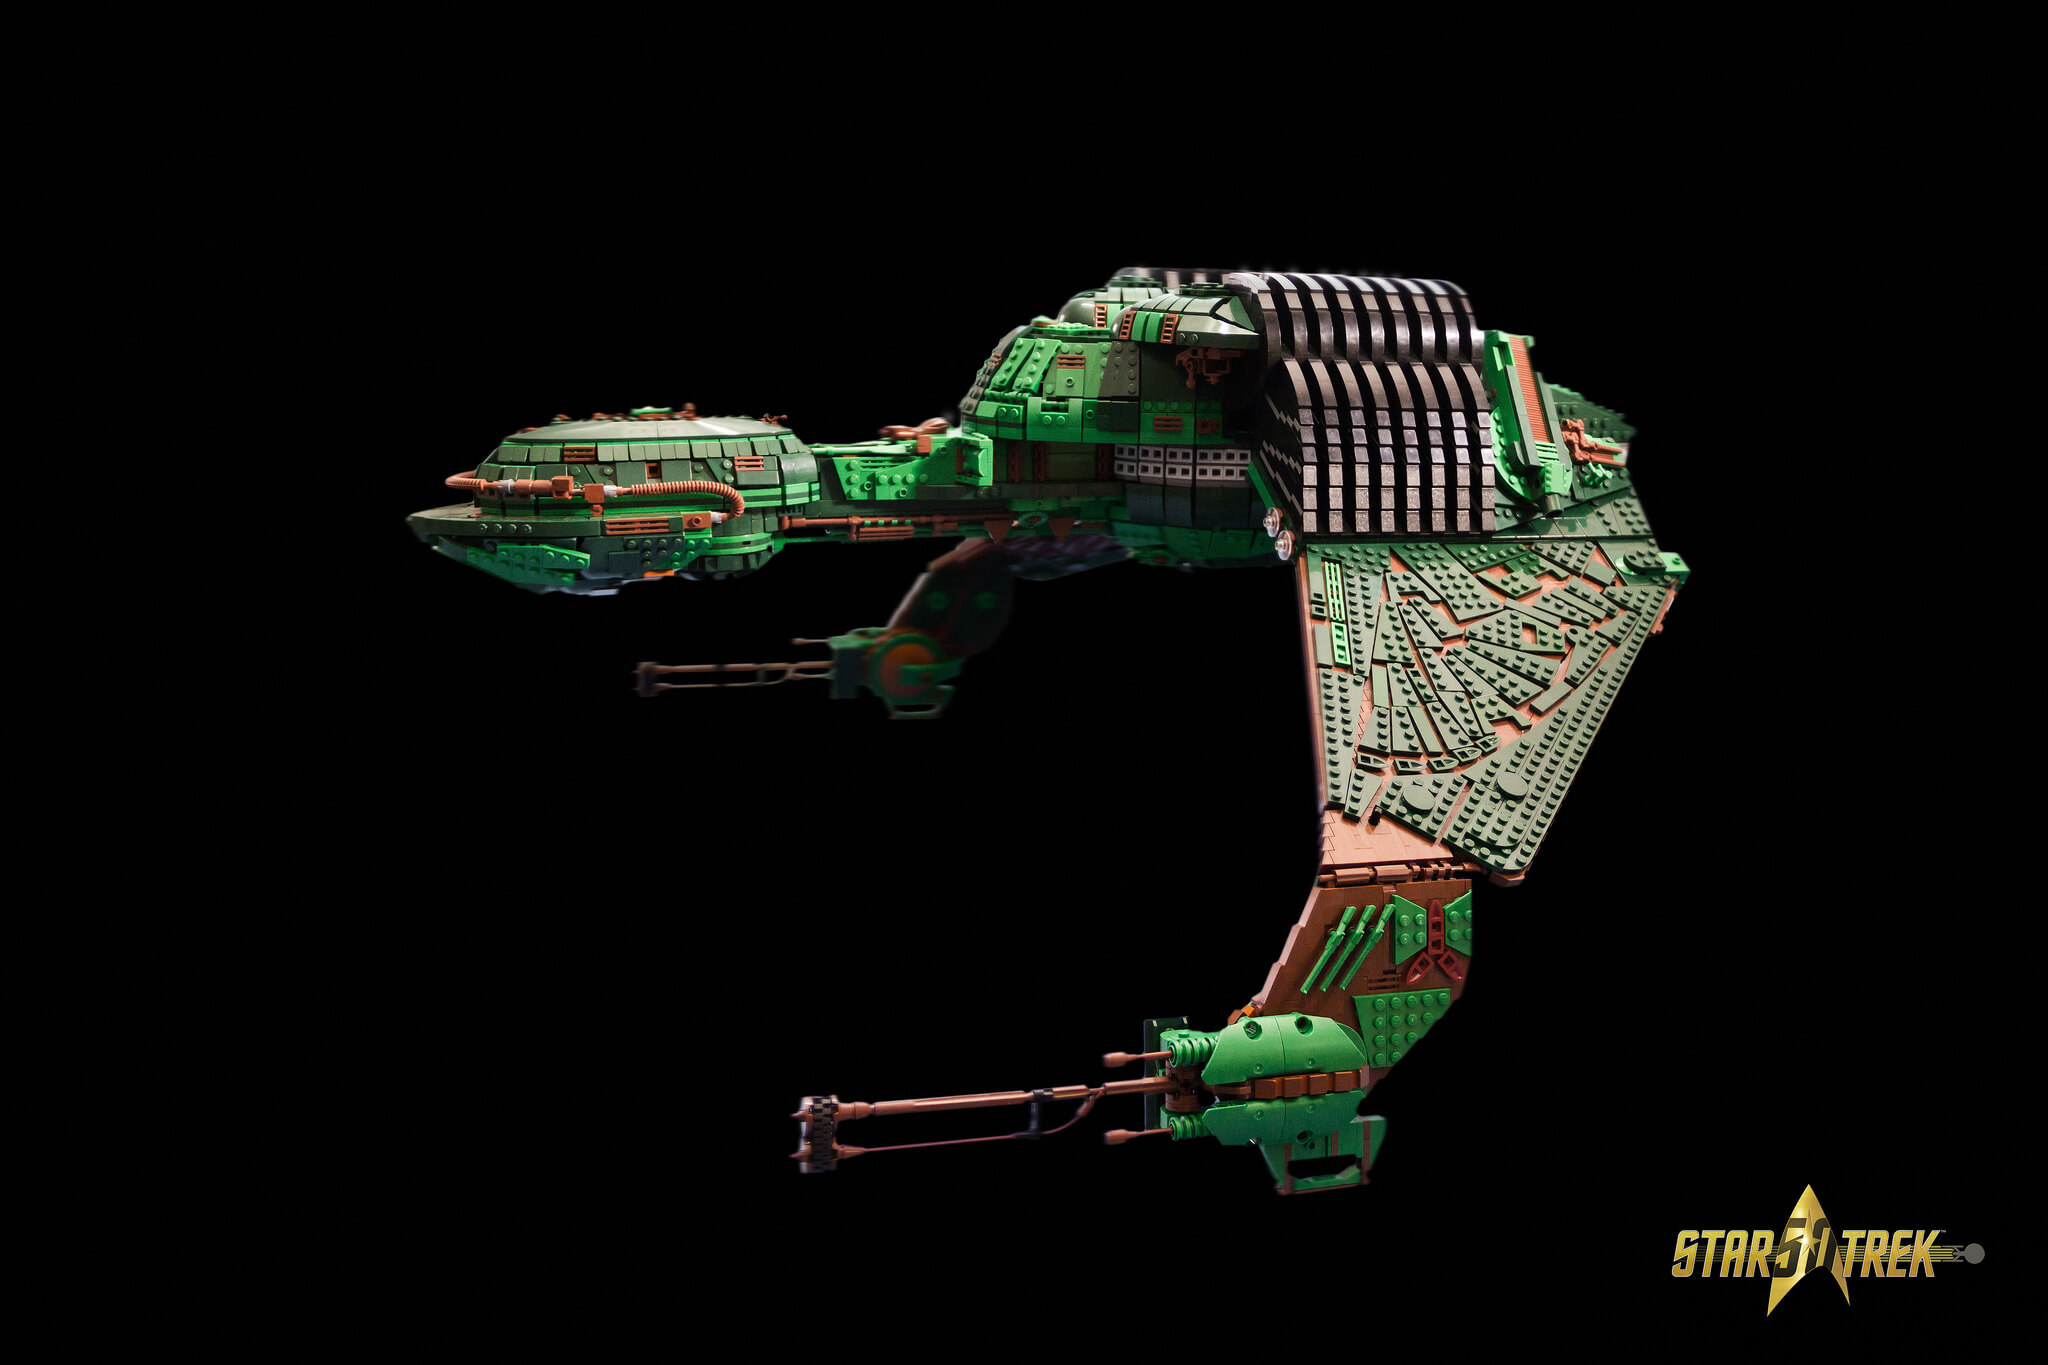 lego star trek bird of prey (1)